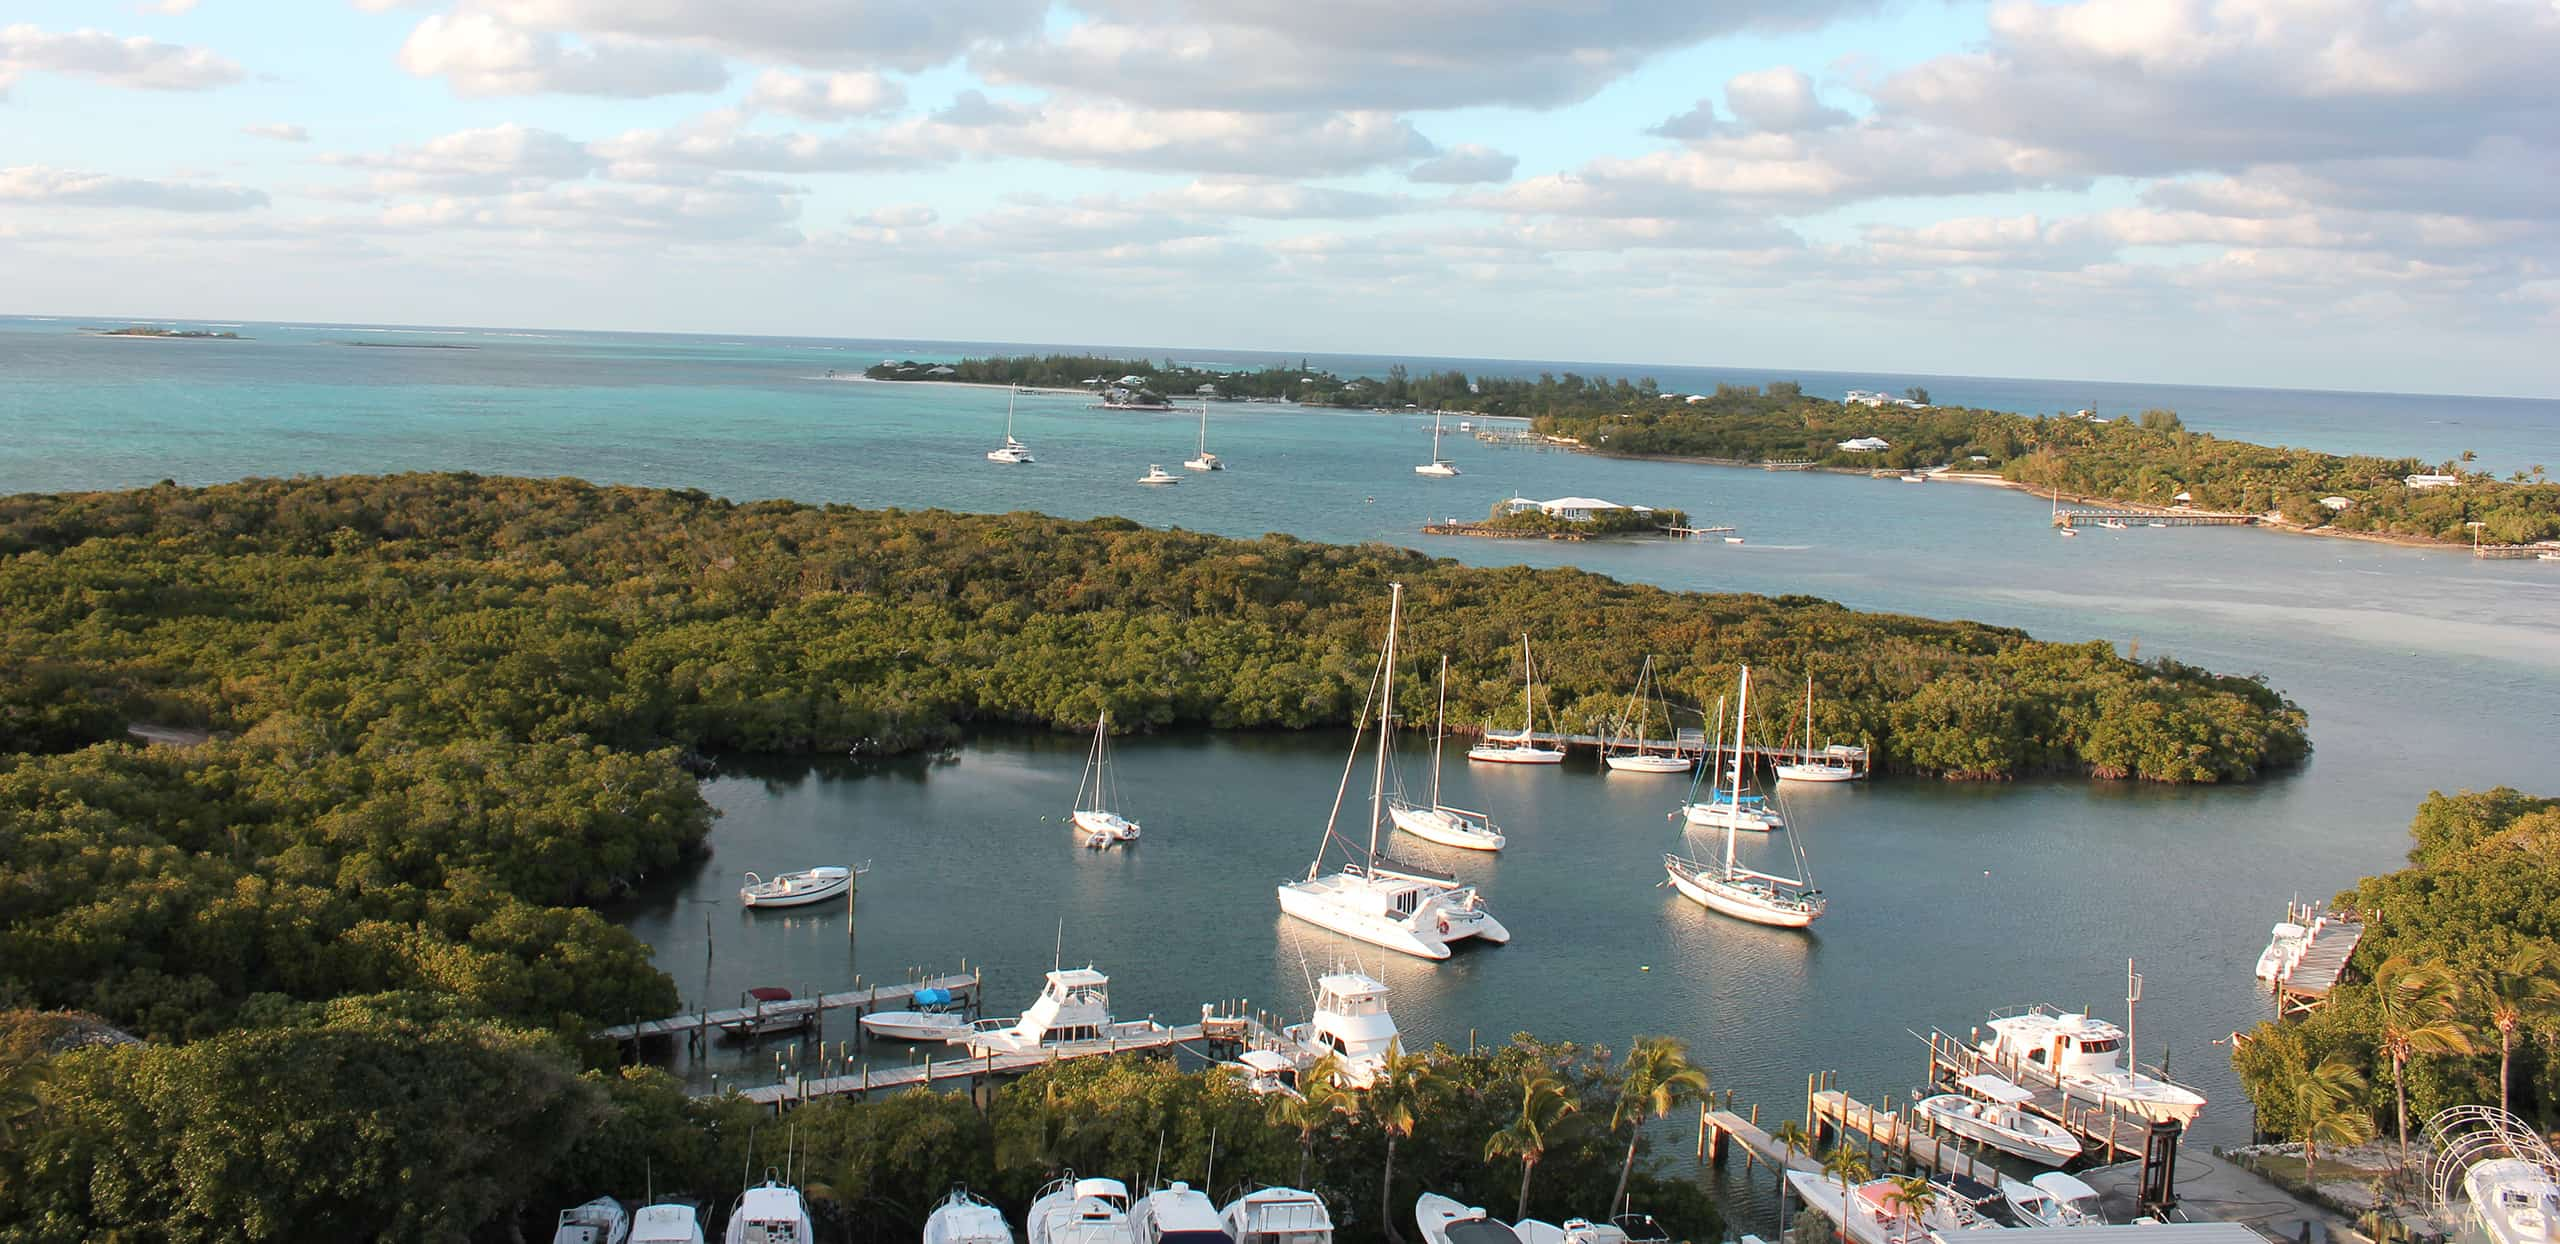 Boats docked at various piers in The Bahamas